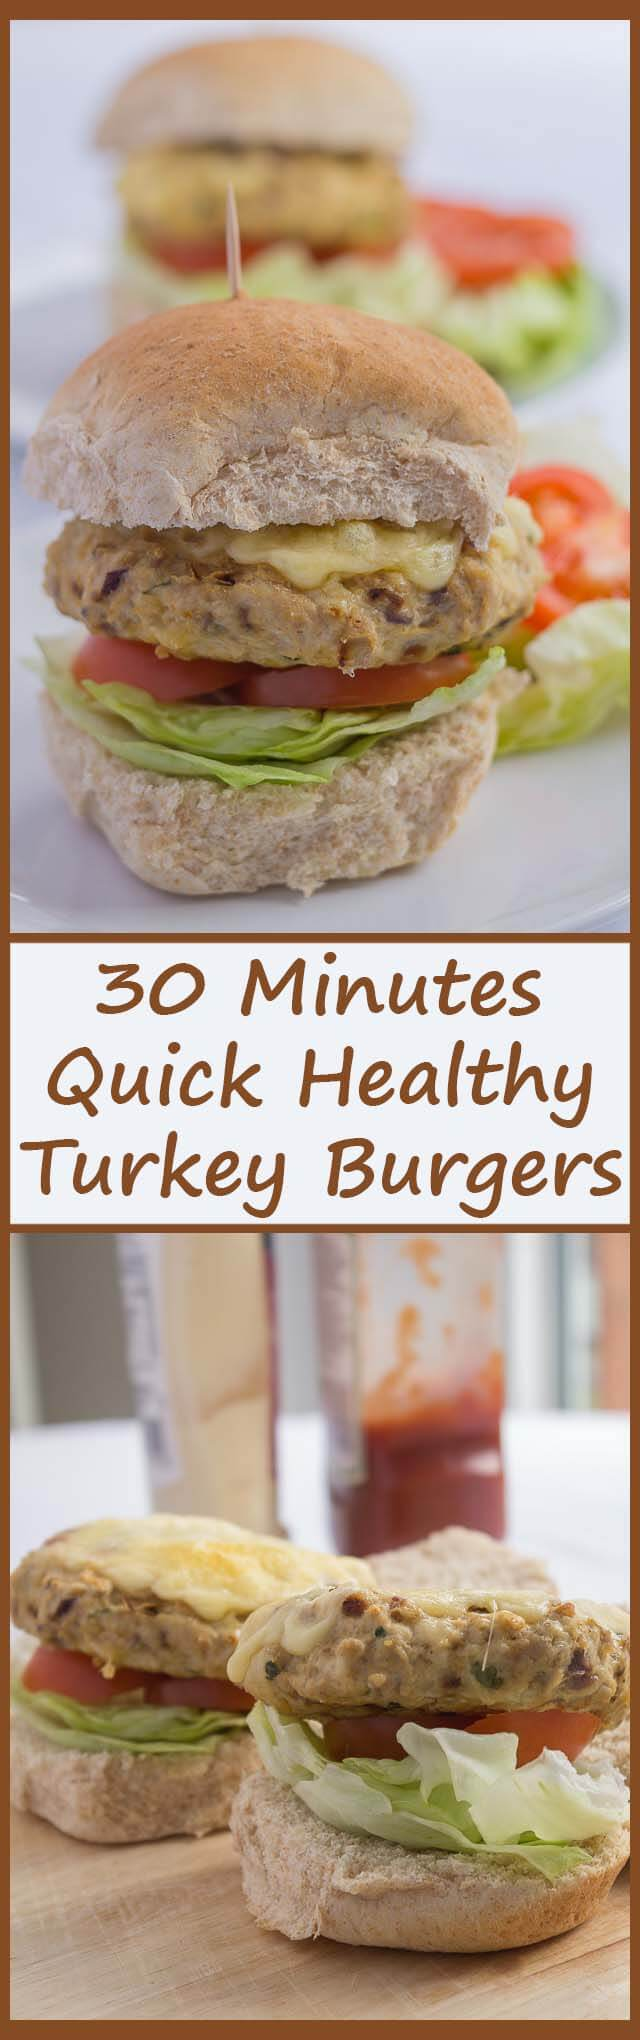 Healthier and lower in fat, these tasty turkey burgers are not only quick to prepare but kids just love them.